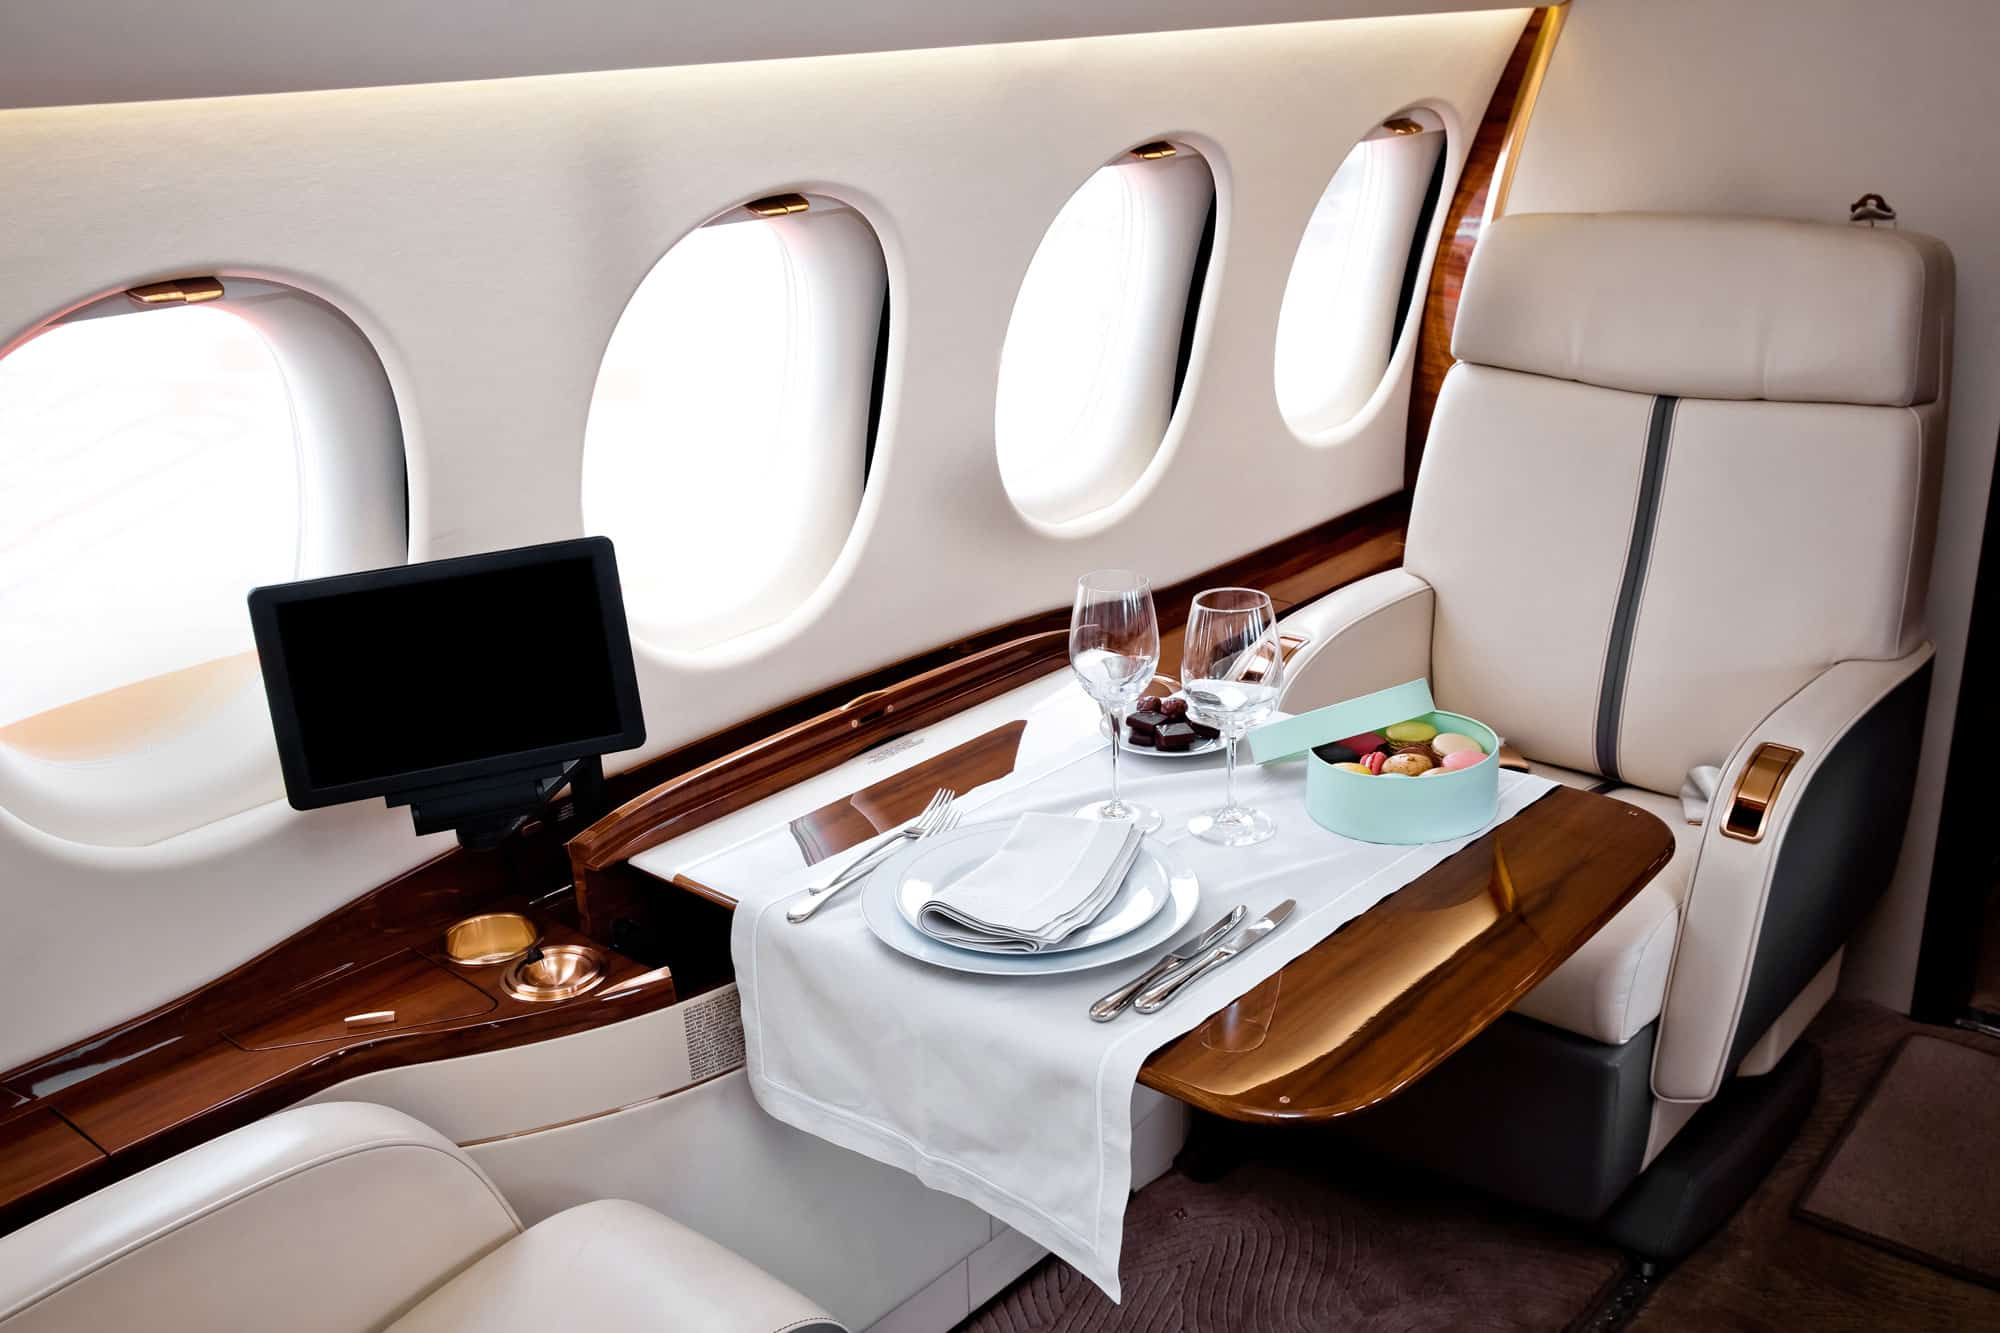 Luxury private jet interior